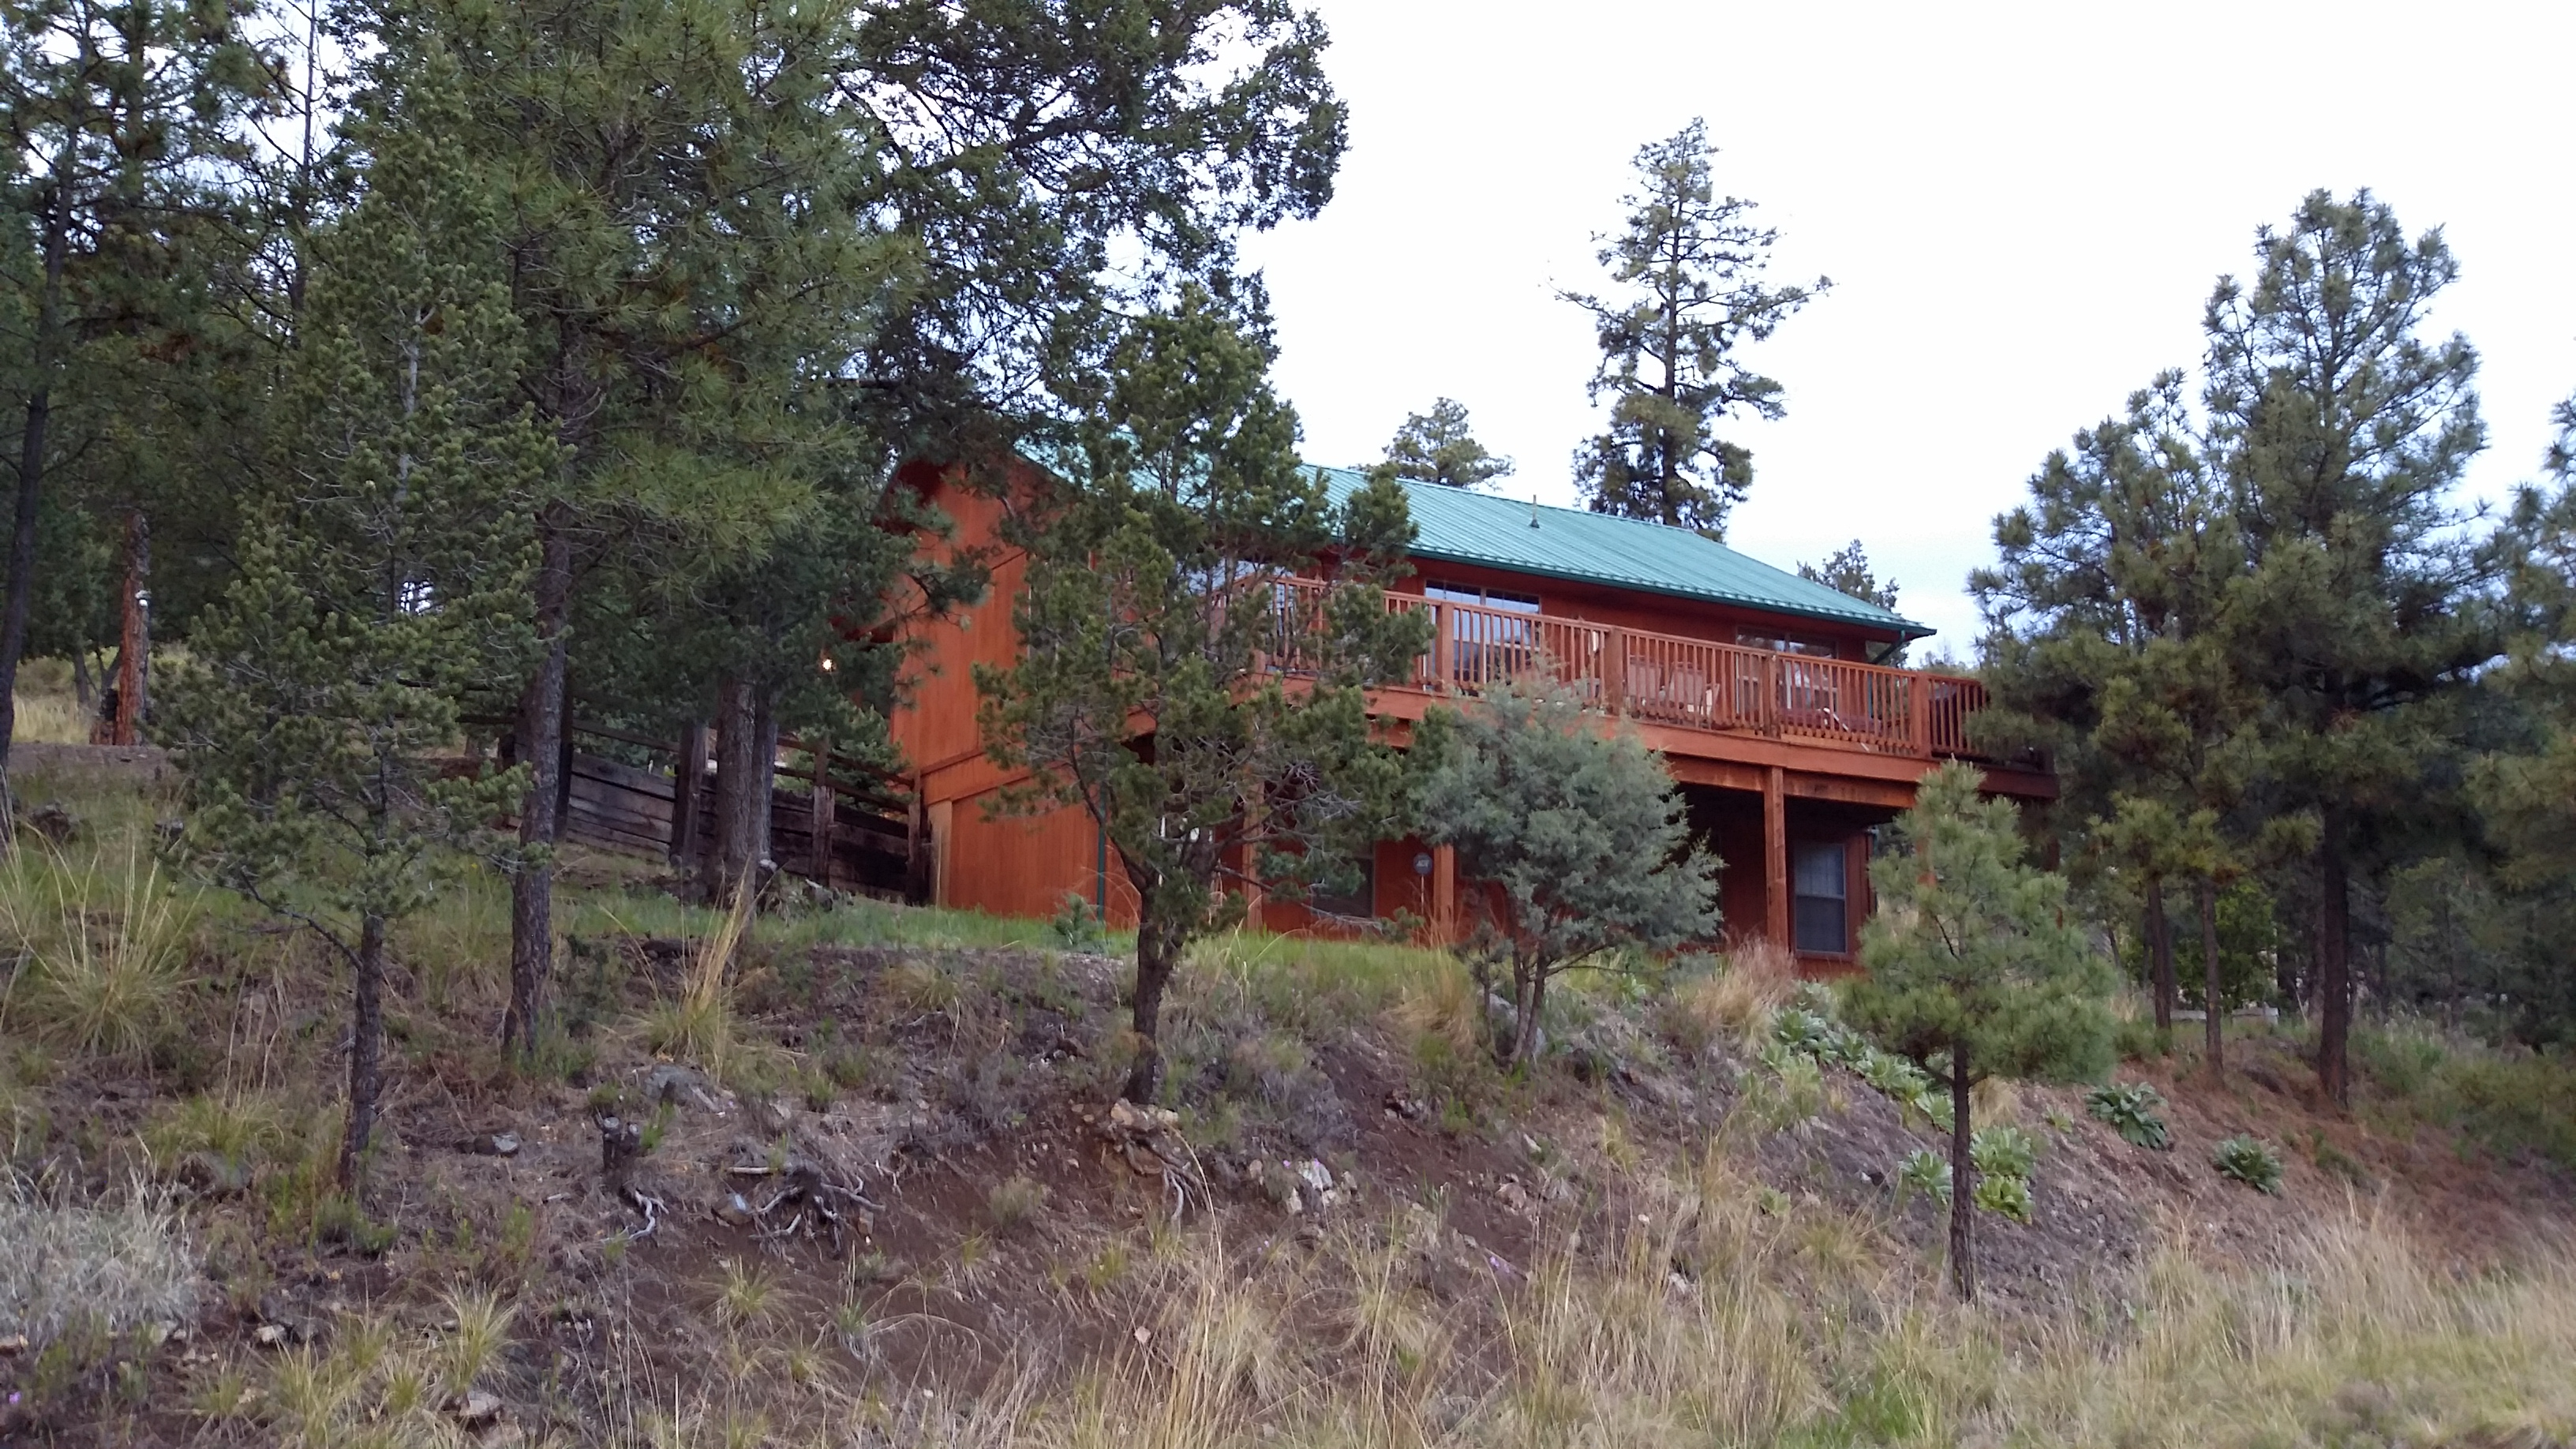 ruidoso dollywood forge private with rentals door cheap gatlinburg tn pigeonforgetwocabrental friendly near and in pool gatlburg mounta under cabin outdoor lodging pigeo pet rental cabins pigeon